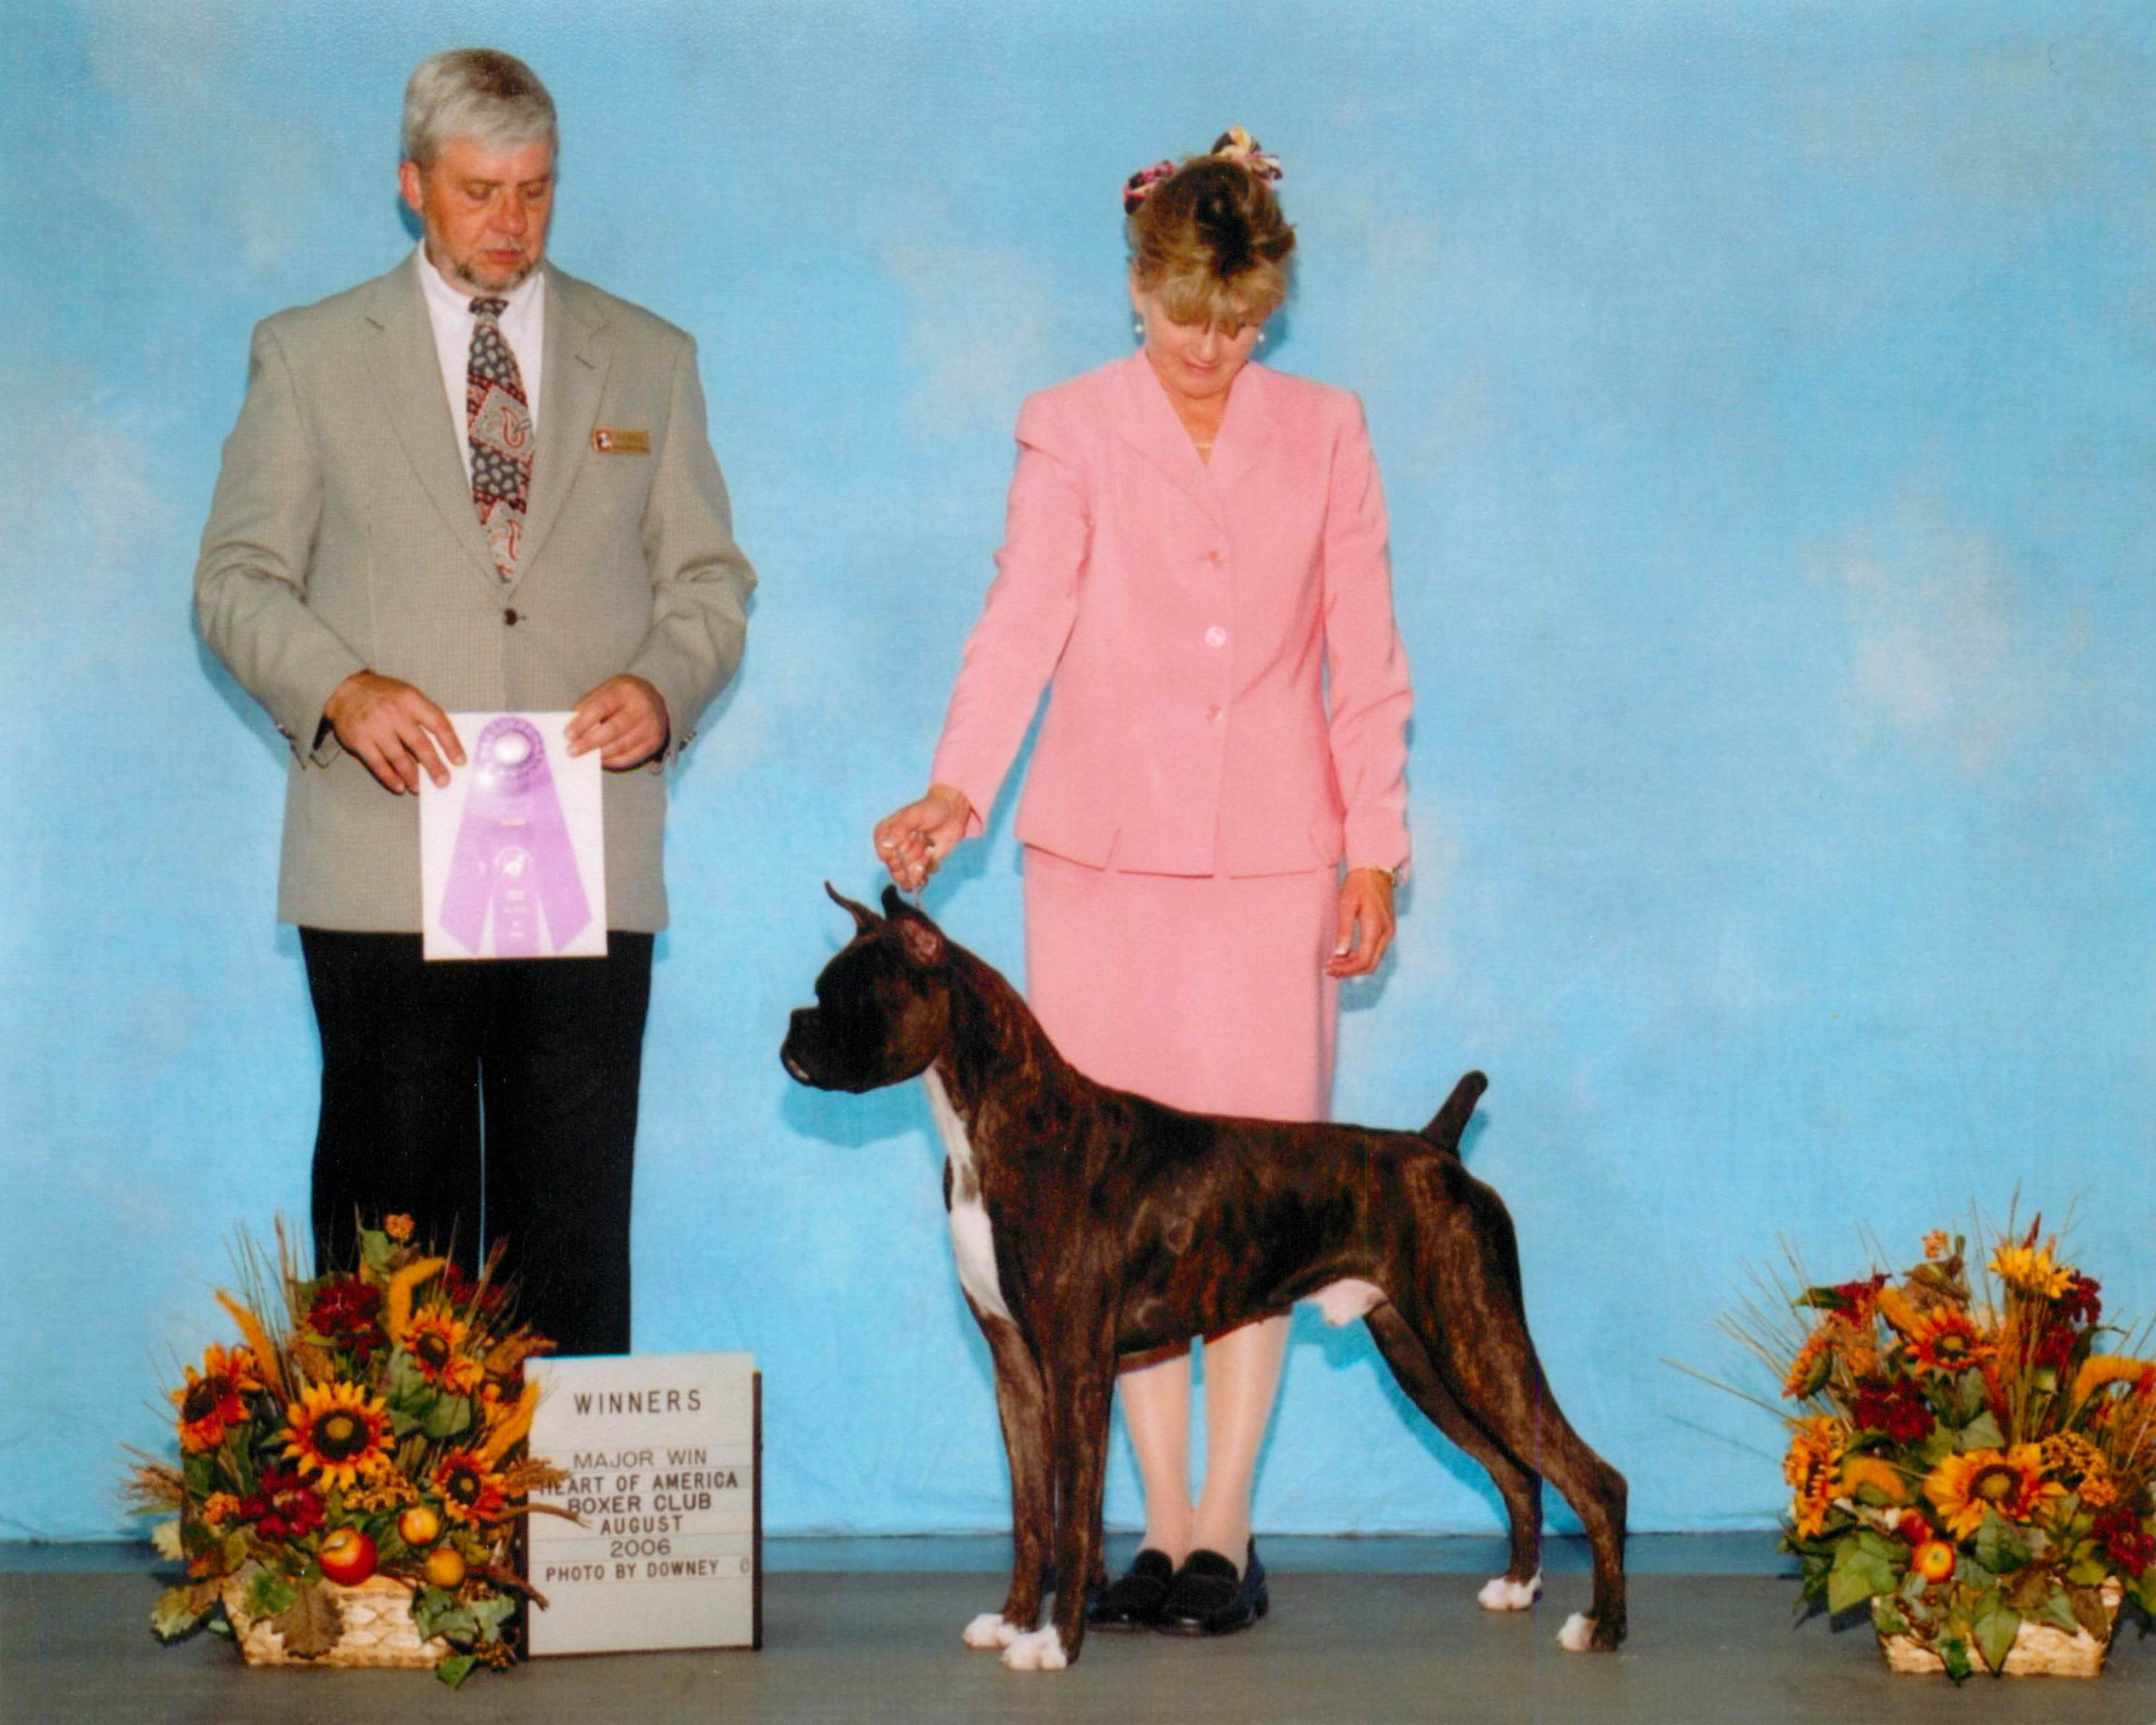 Winners Dog @ 2006 Specialty Show #1